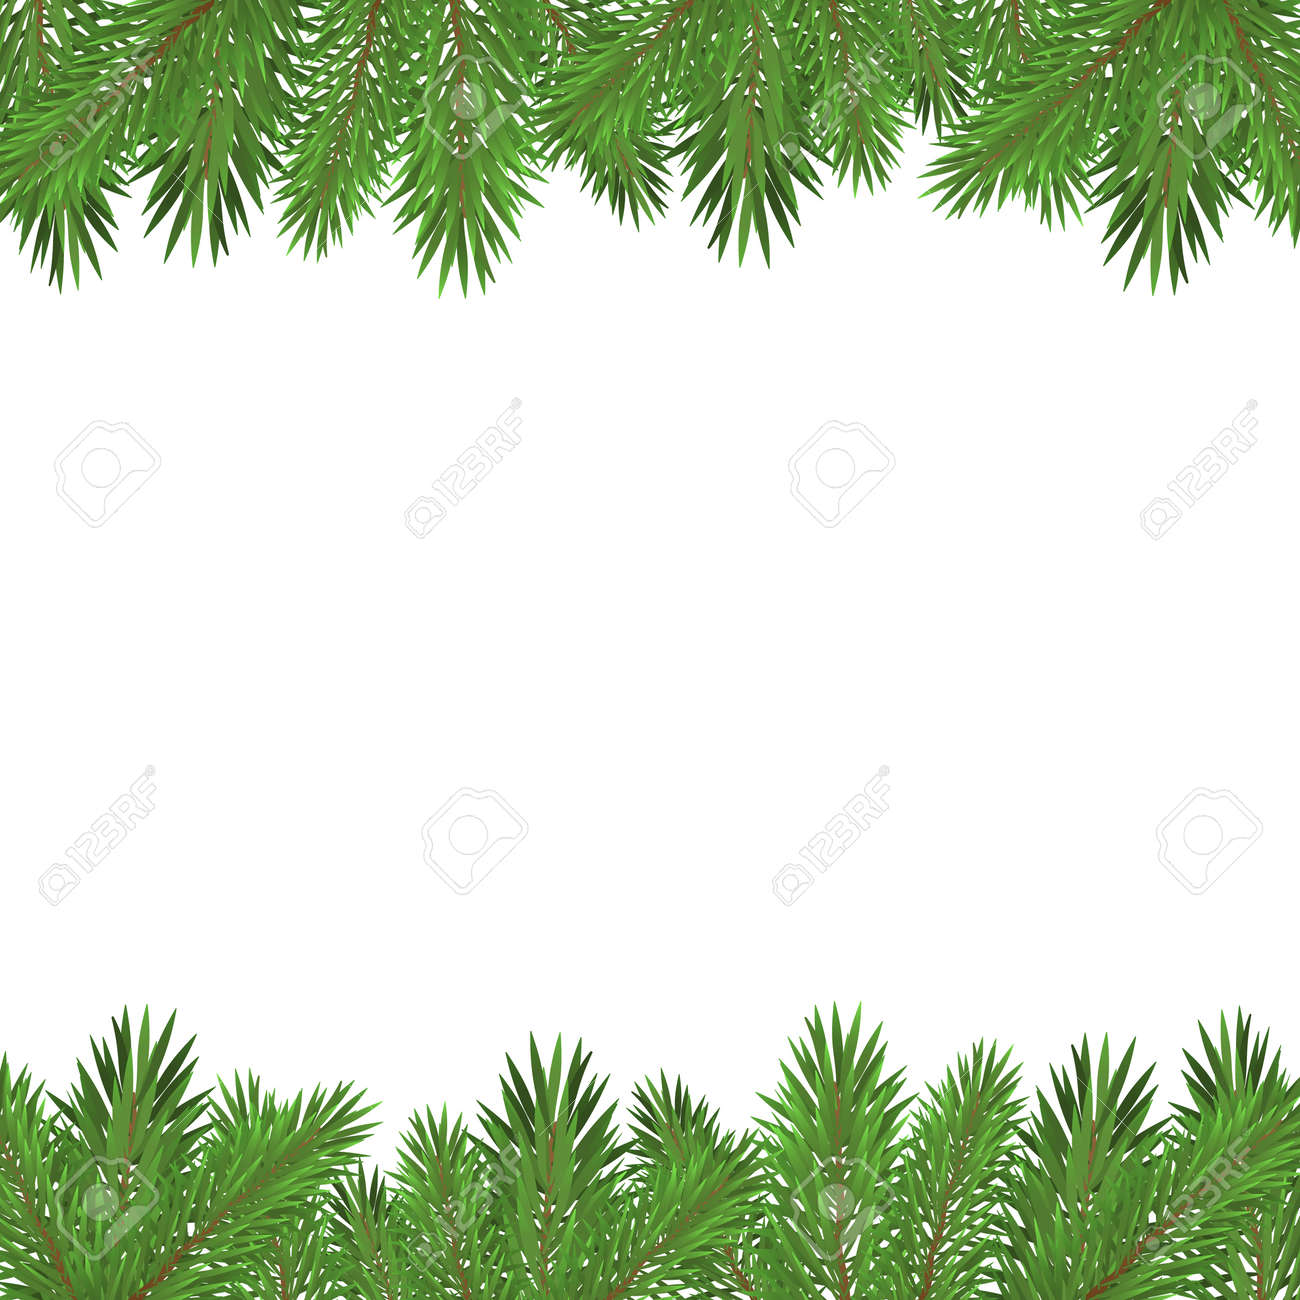 Green christmas tree branches isolated on white background. - 137245880